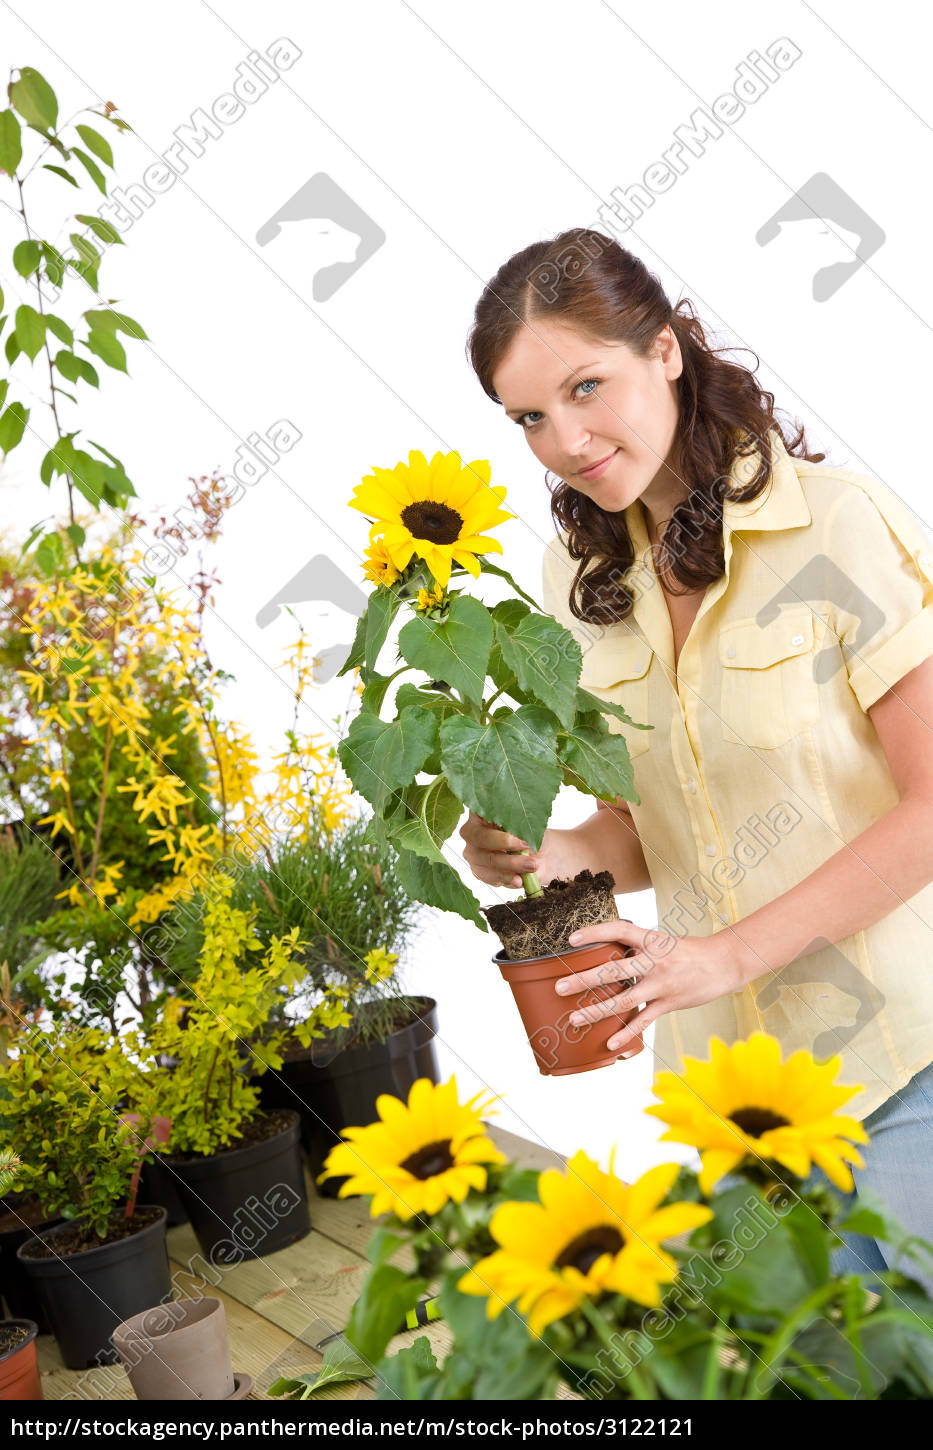 gardening, -, , woman, holding, flower - 3122121